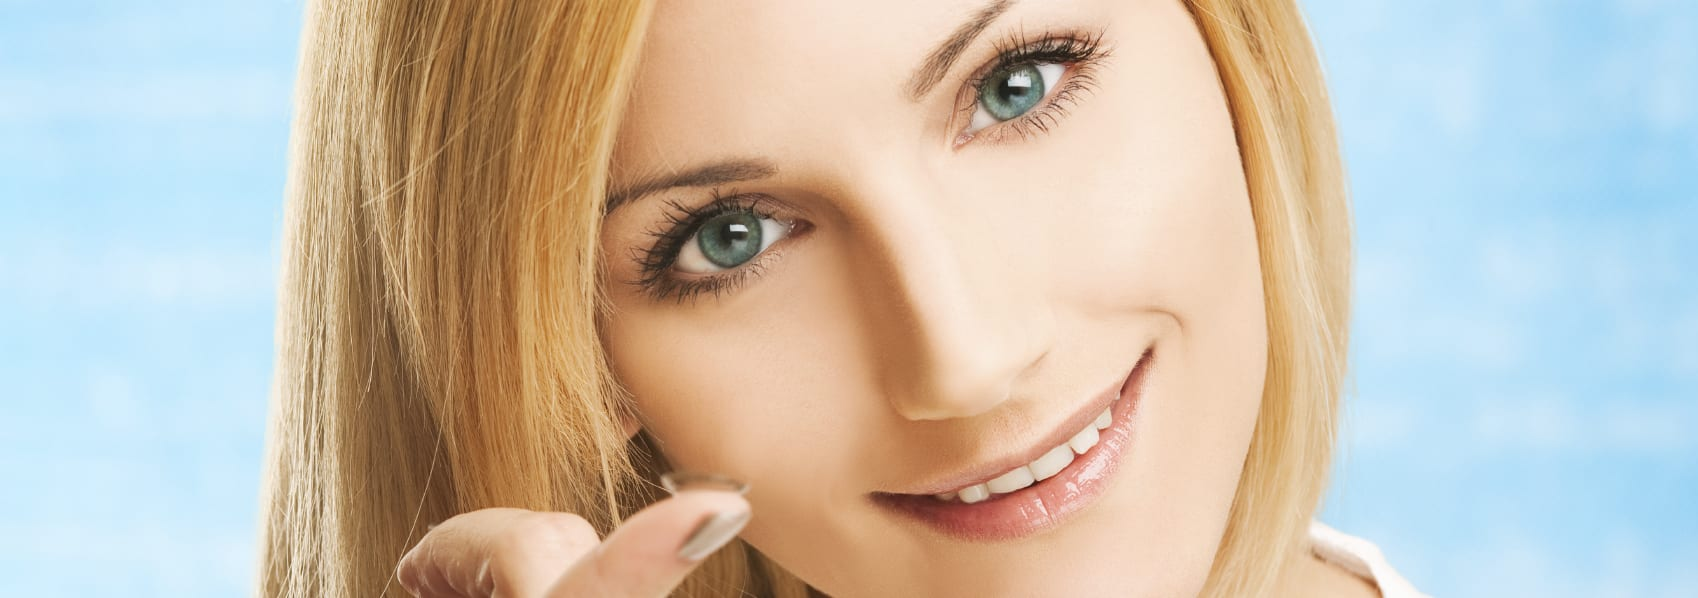 contact lens smiling